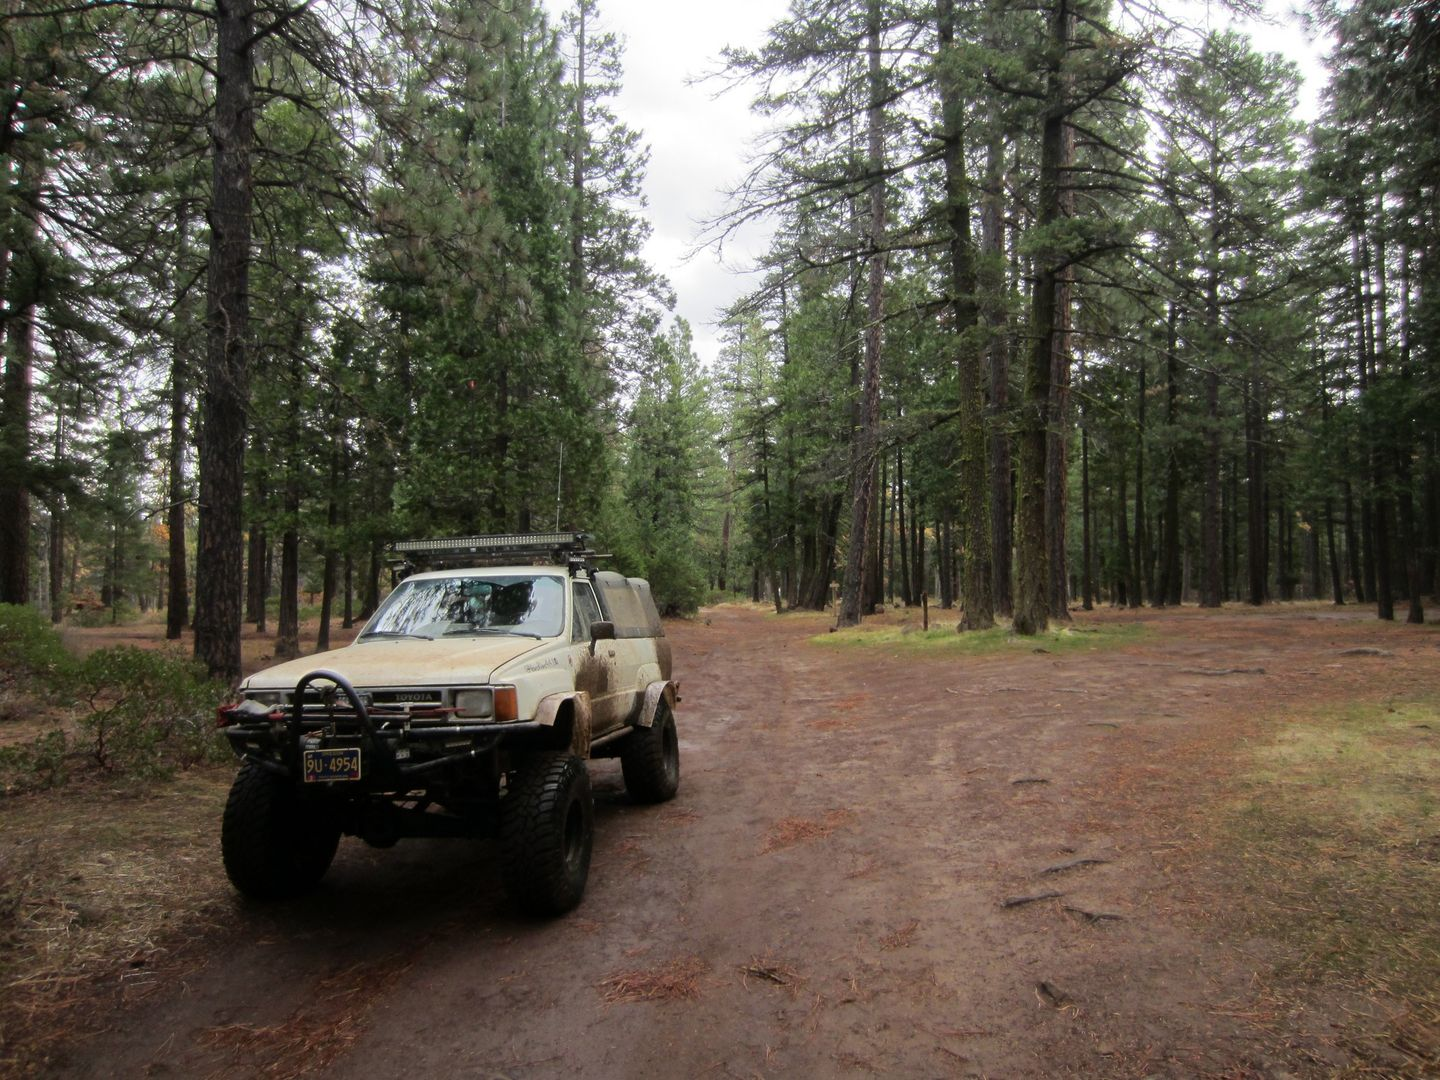 Barlow Trail - Waypoint 6: Continue Straight